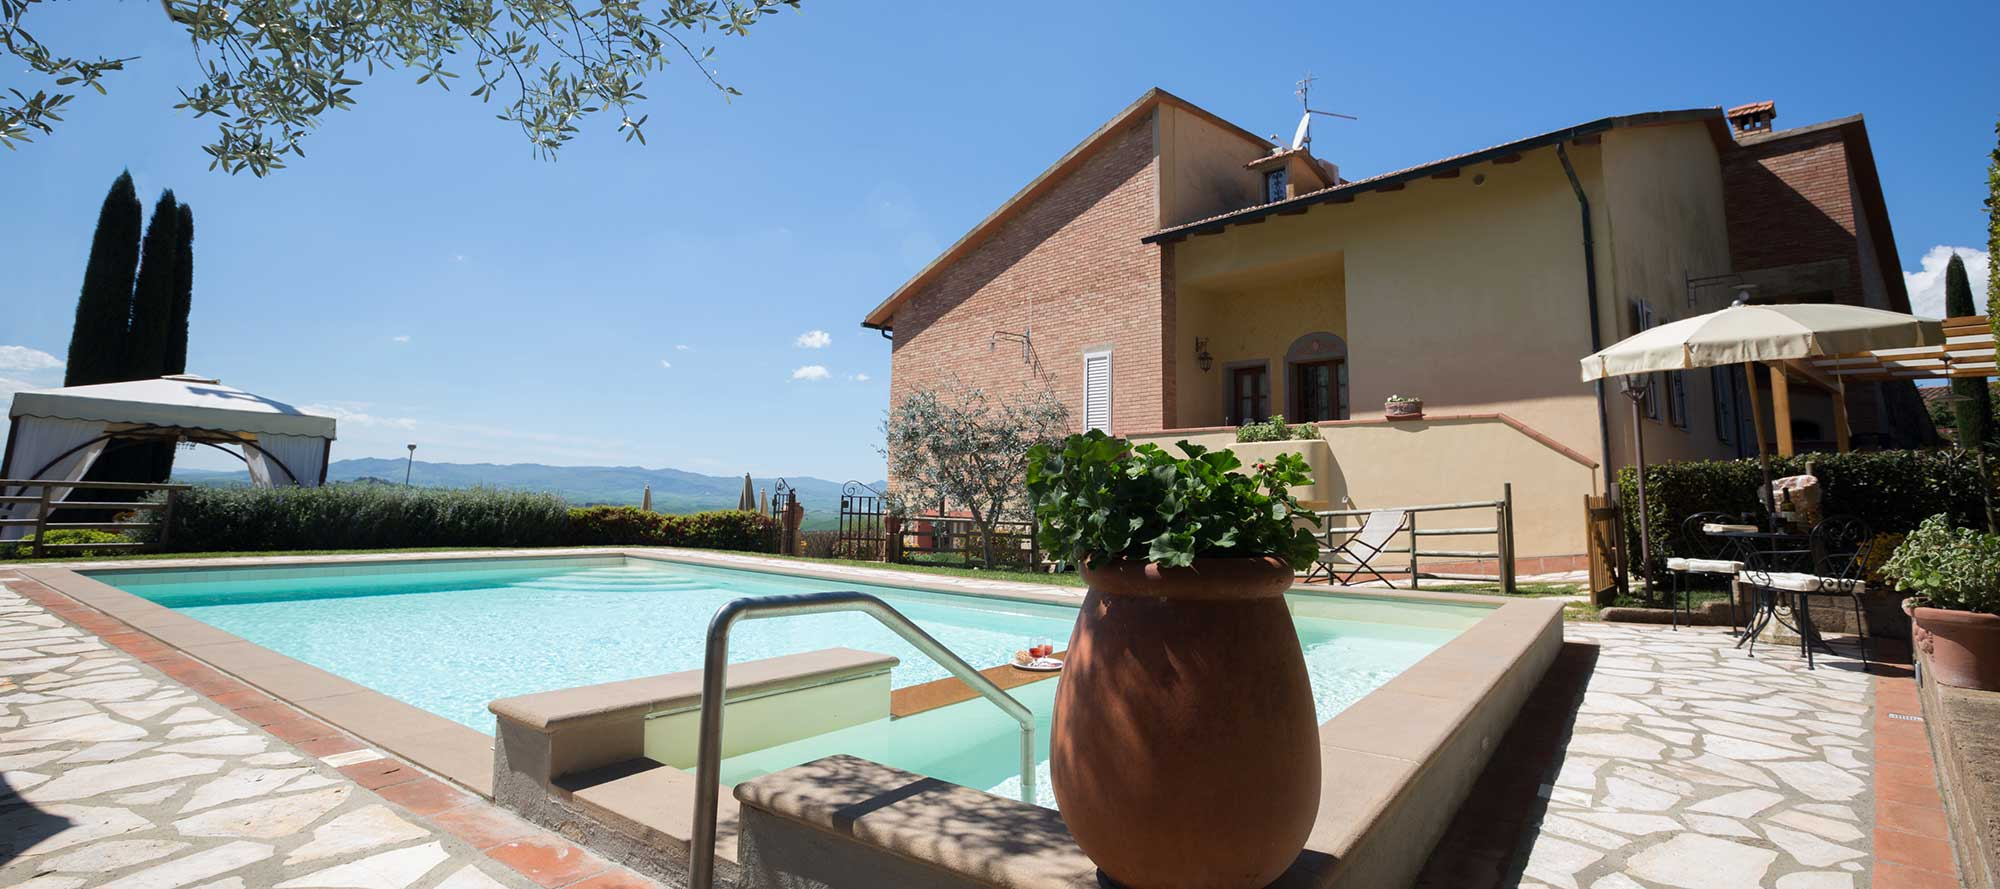 Details Montaione Villa - All Properties in Tuscany - Florence